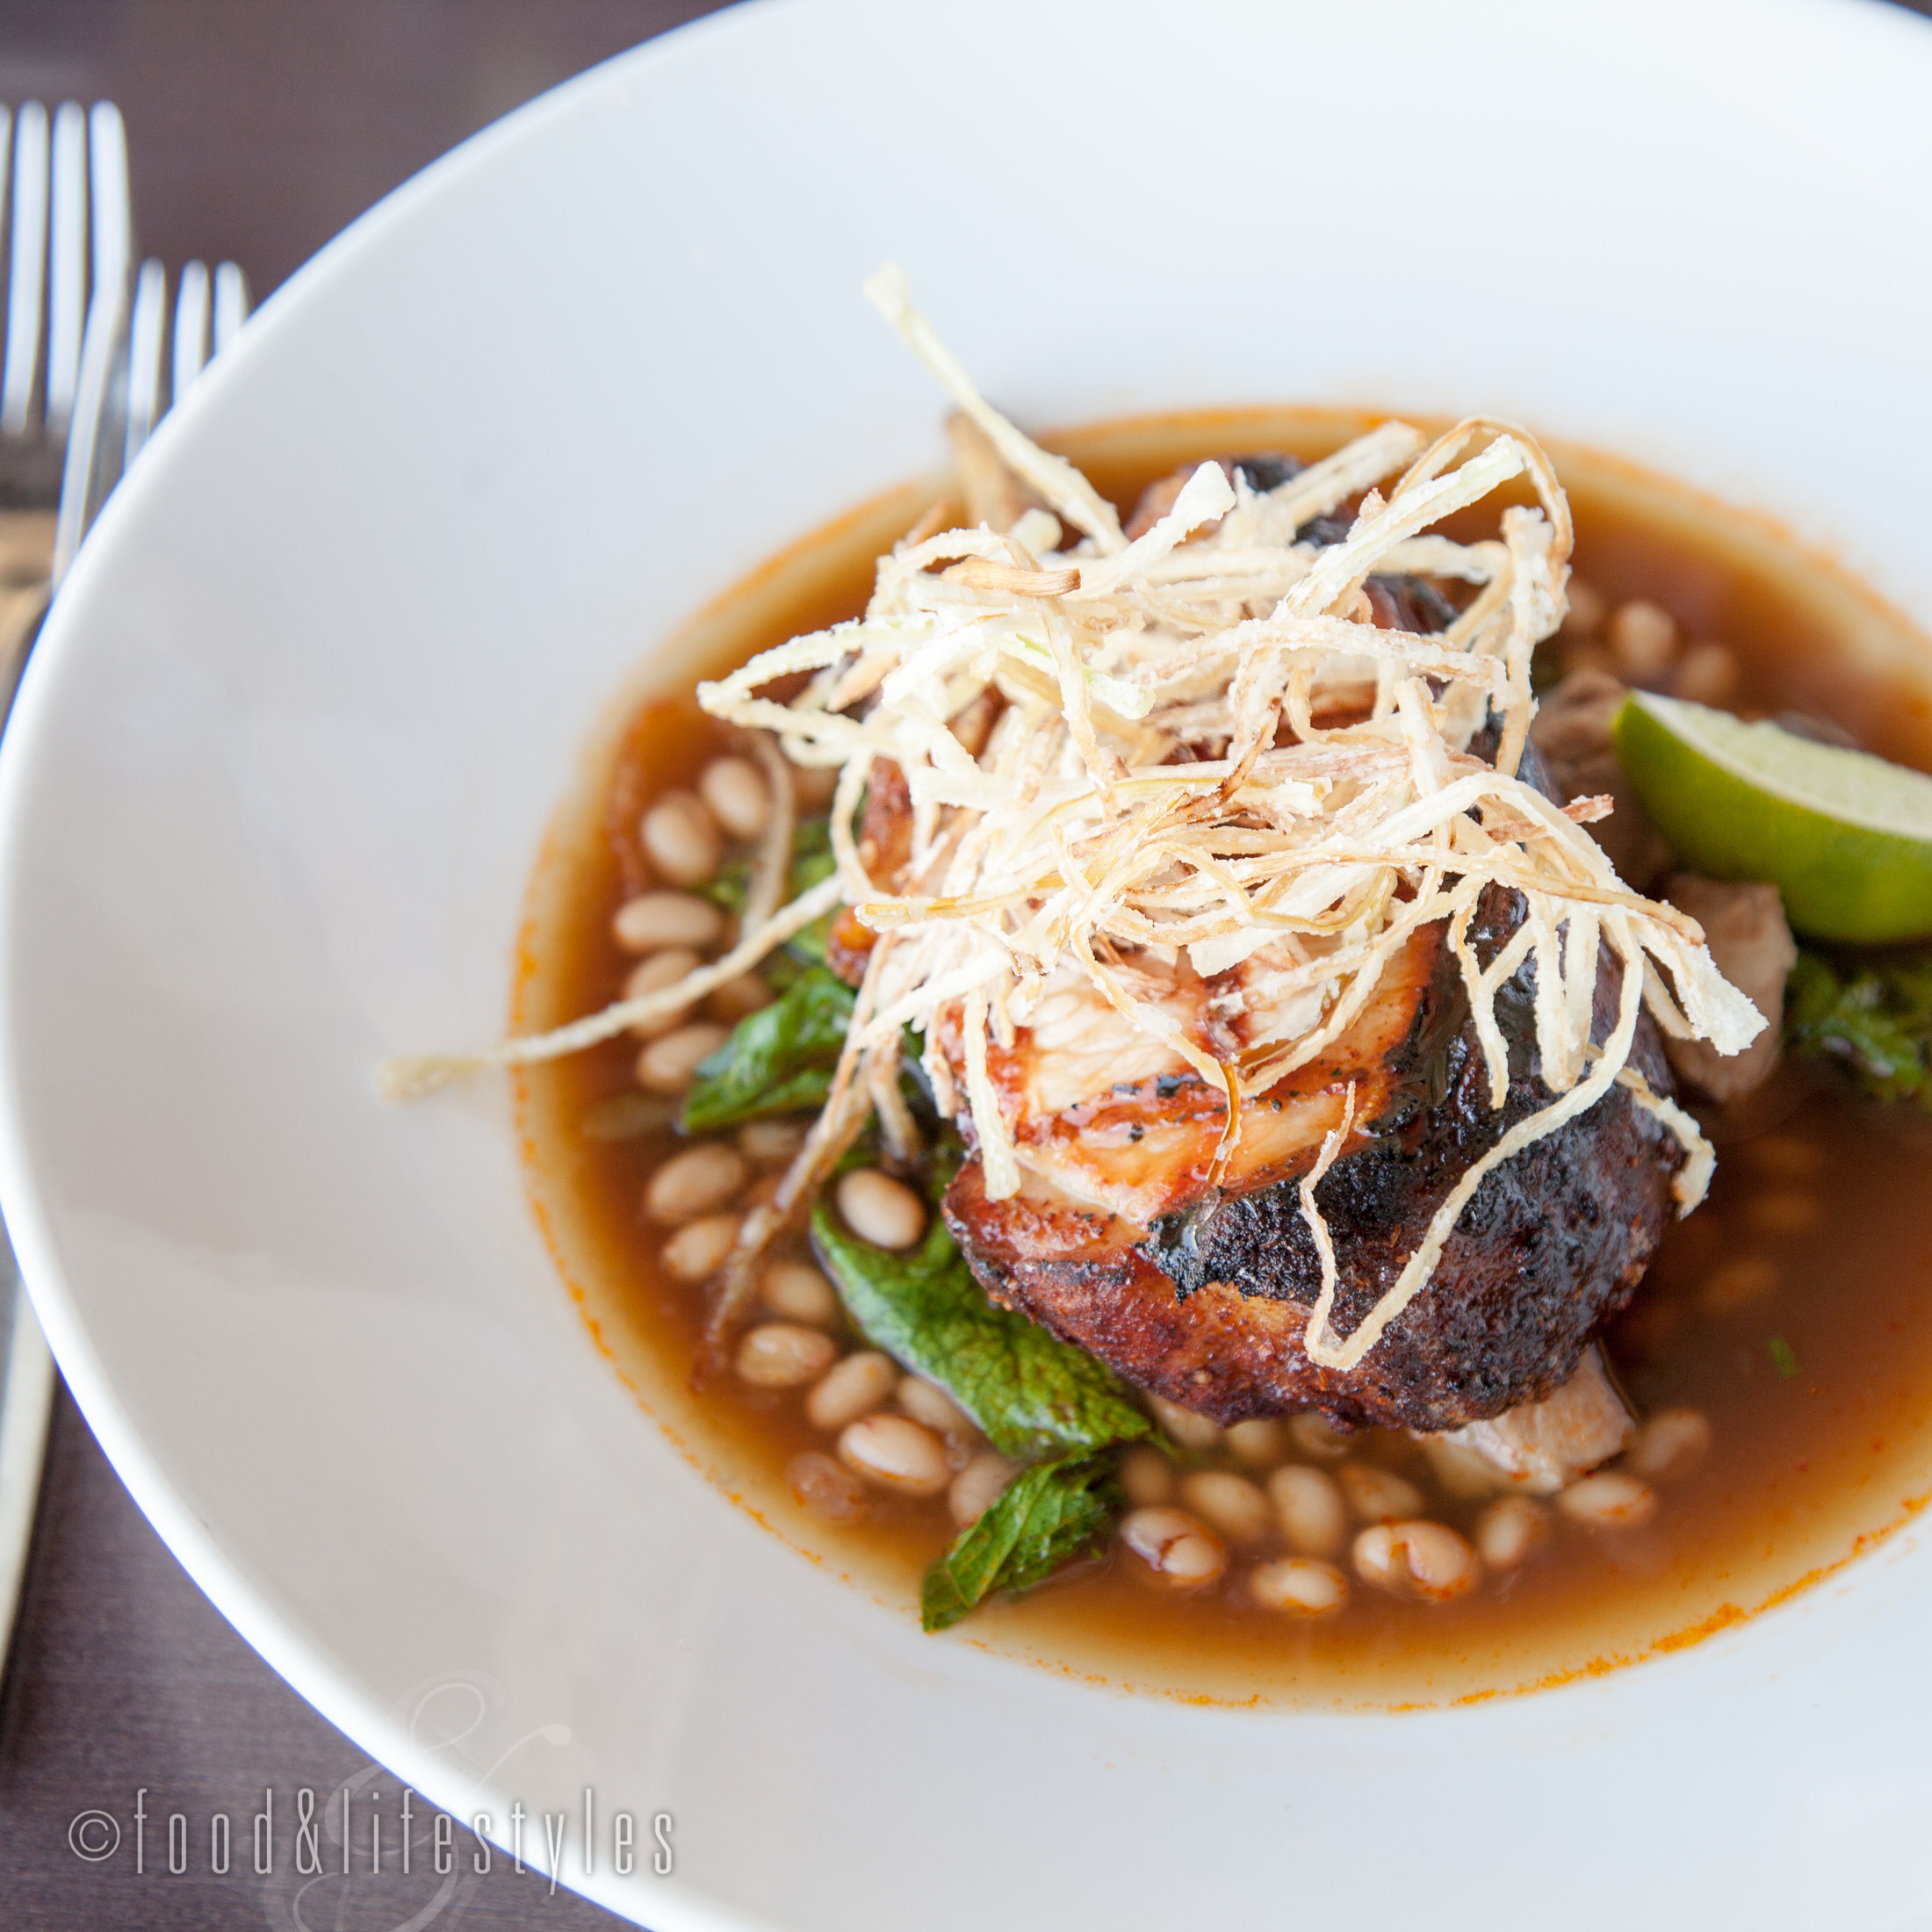 Smoked pork chop with braised white beans and mustard greens